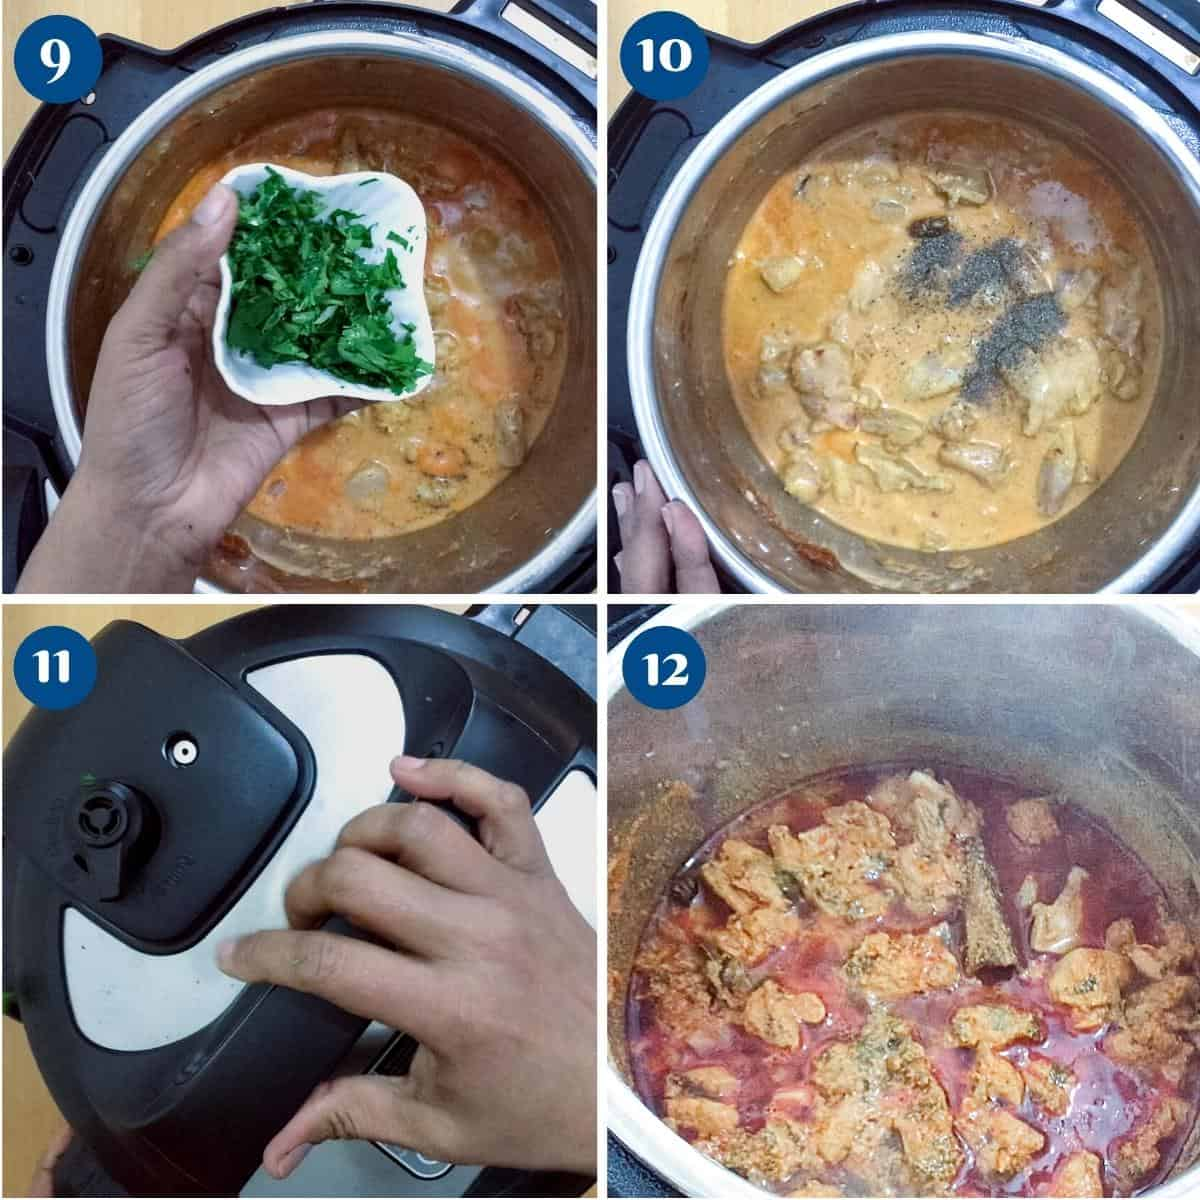 Progress pictures collage making curry in the instant pot.